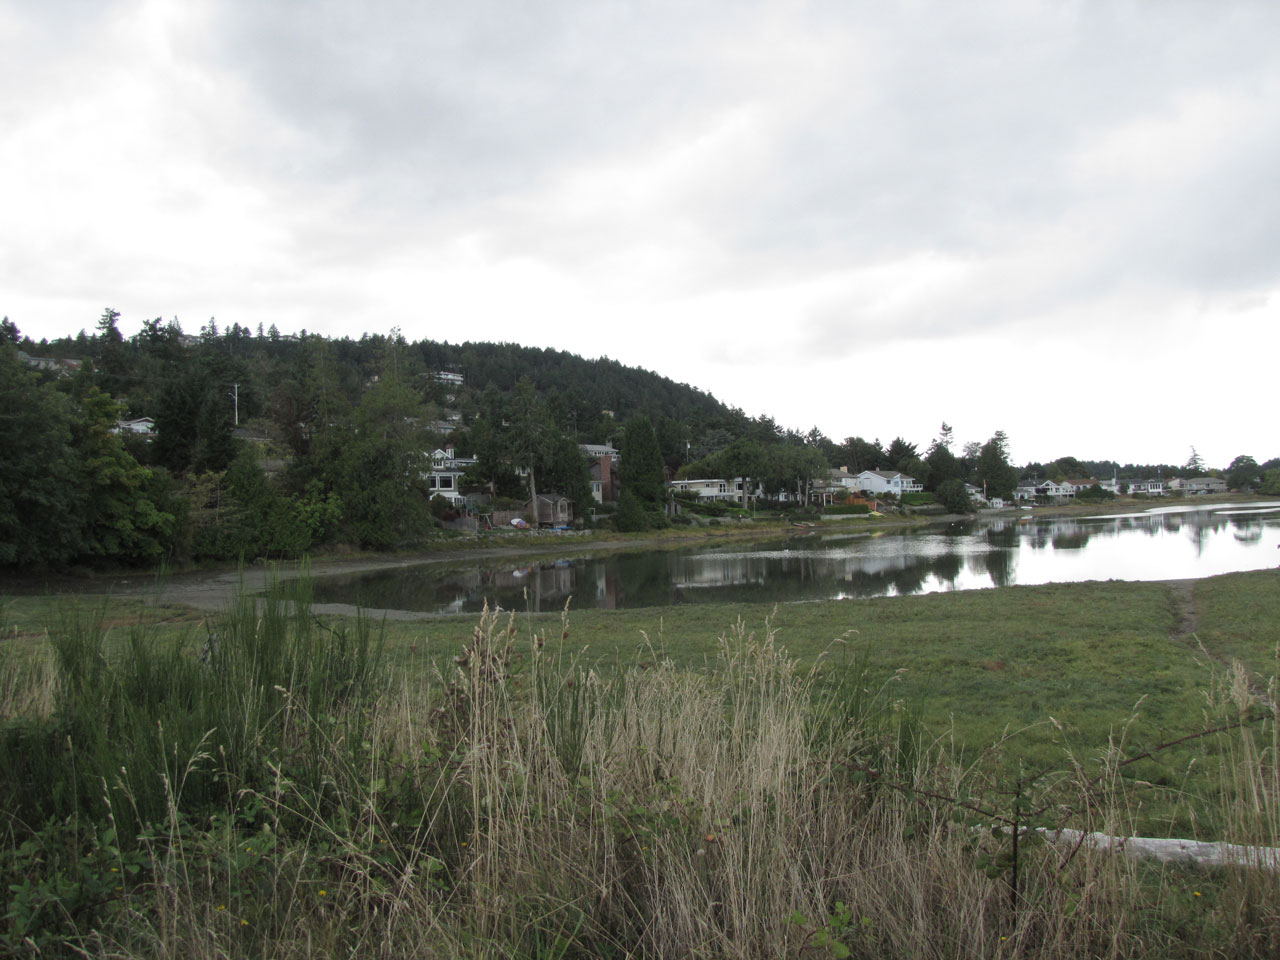 Water surrounded by green grass and tress with homes in the distance